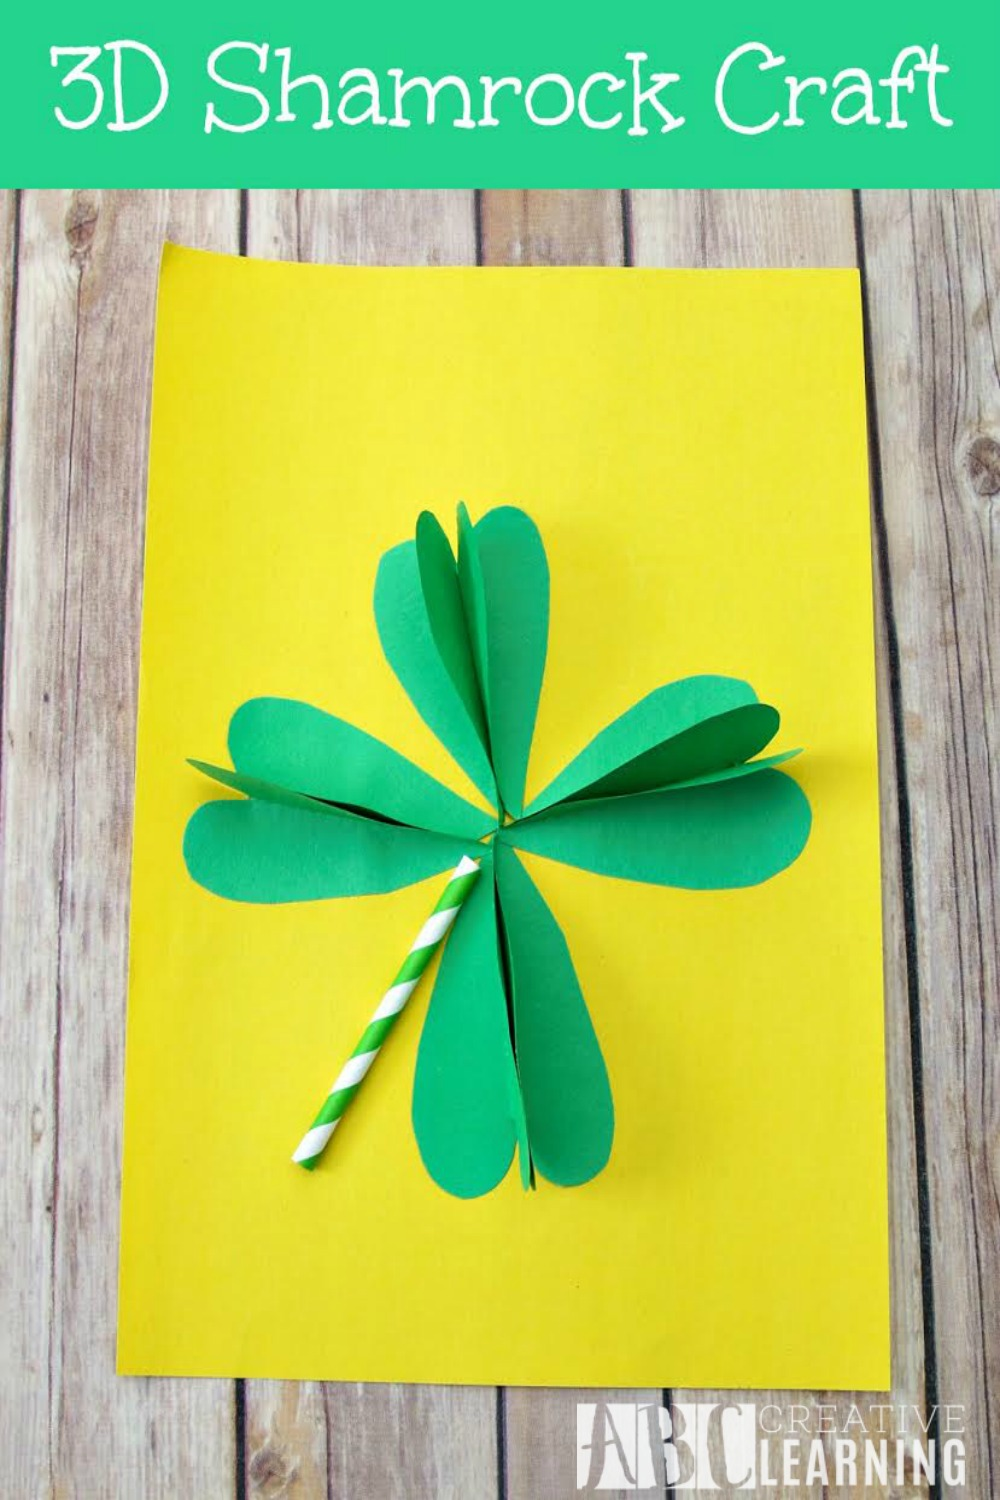 3D Shamrock Craft